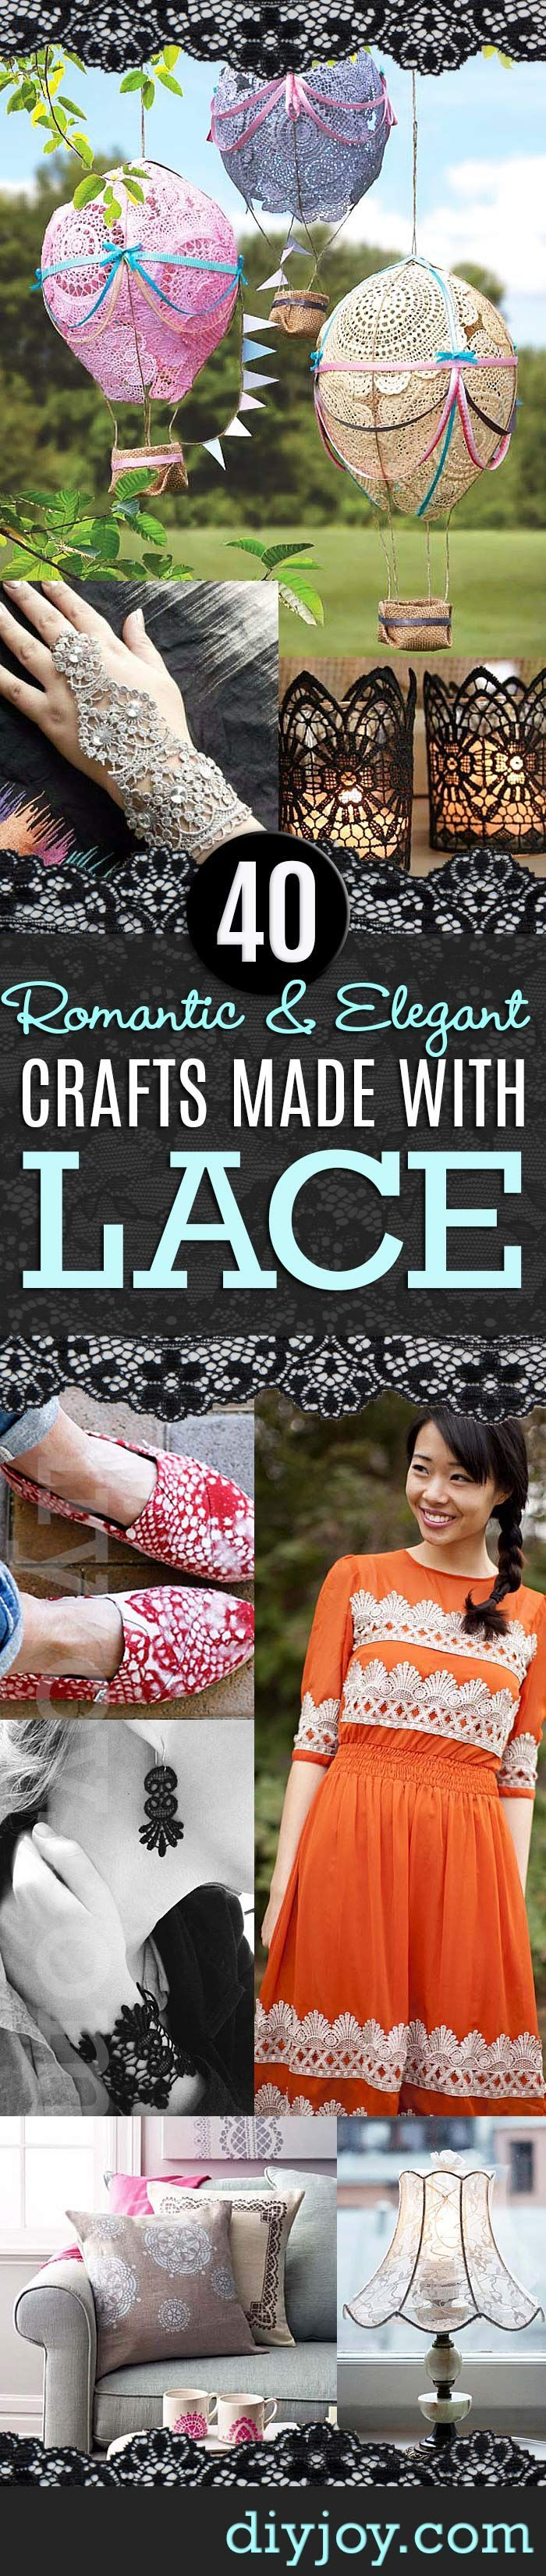 40 Romantic and Elegant DIY Crafts You Can Make with Lace | Cool DIY Ideas for Fashion, Decor, Gifts, Jewelry and Home Accessories Made With Lace | Crochet Lace Shorts, Dresses, Home Decor and Fashion Projects | http://diyjoy.com/diy-crafts-ideas-with-lace